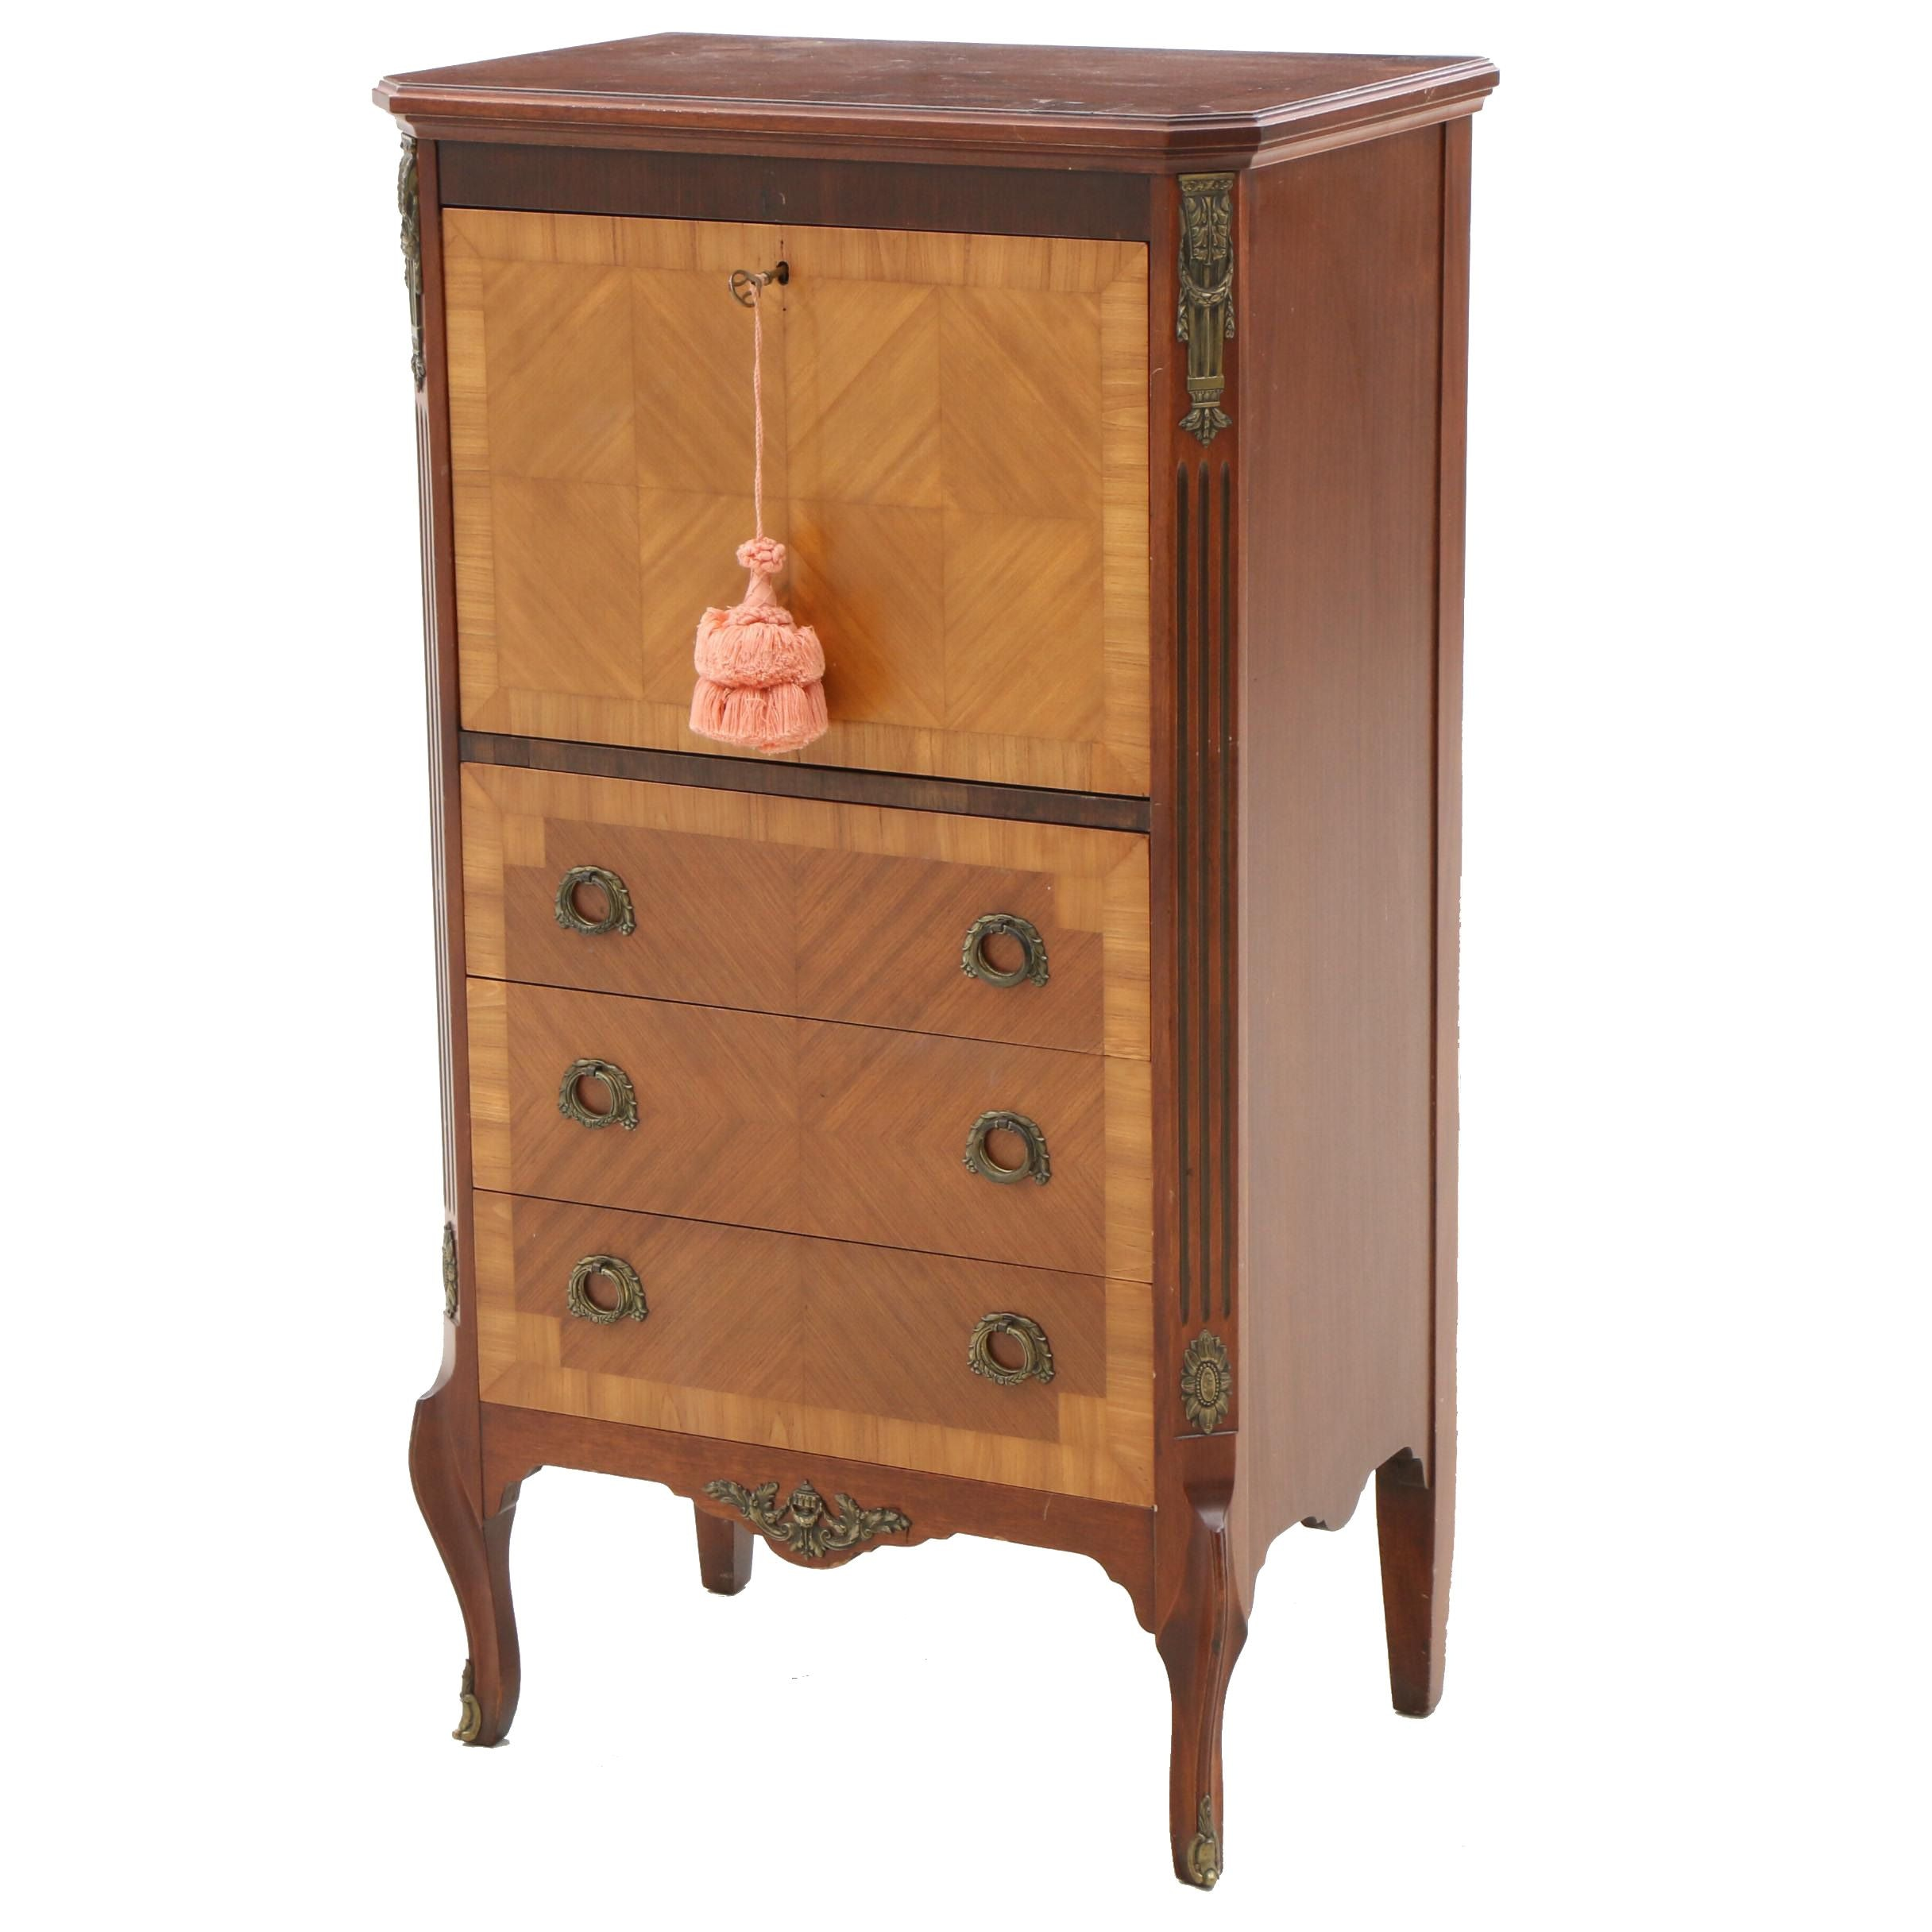 Louis XV Style Mahogany and Satinwood Secretaire Abattant